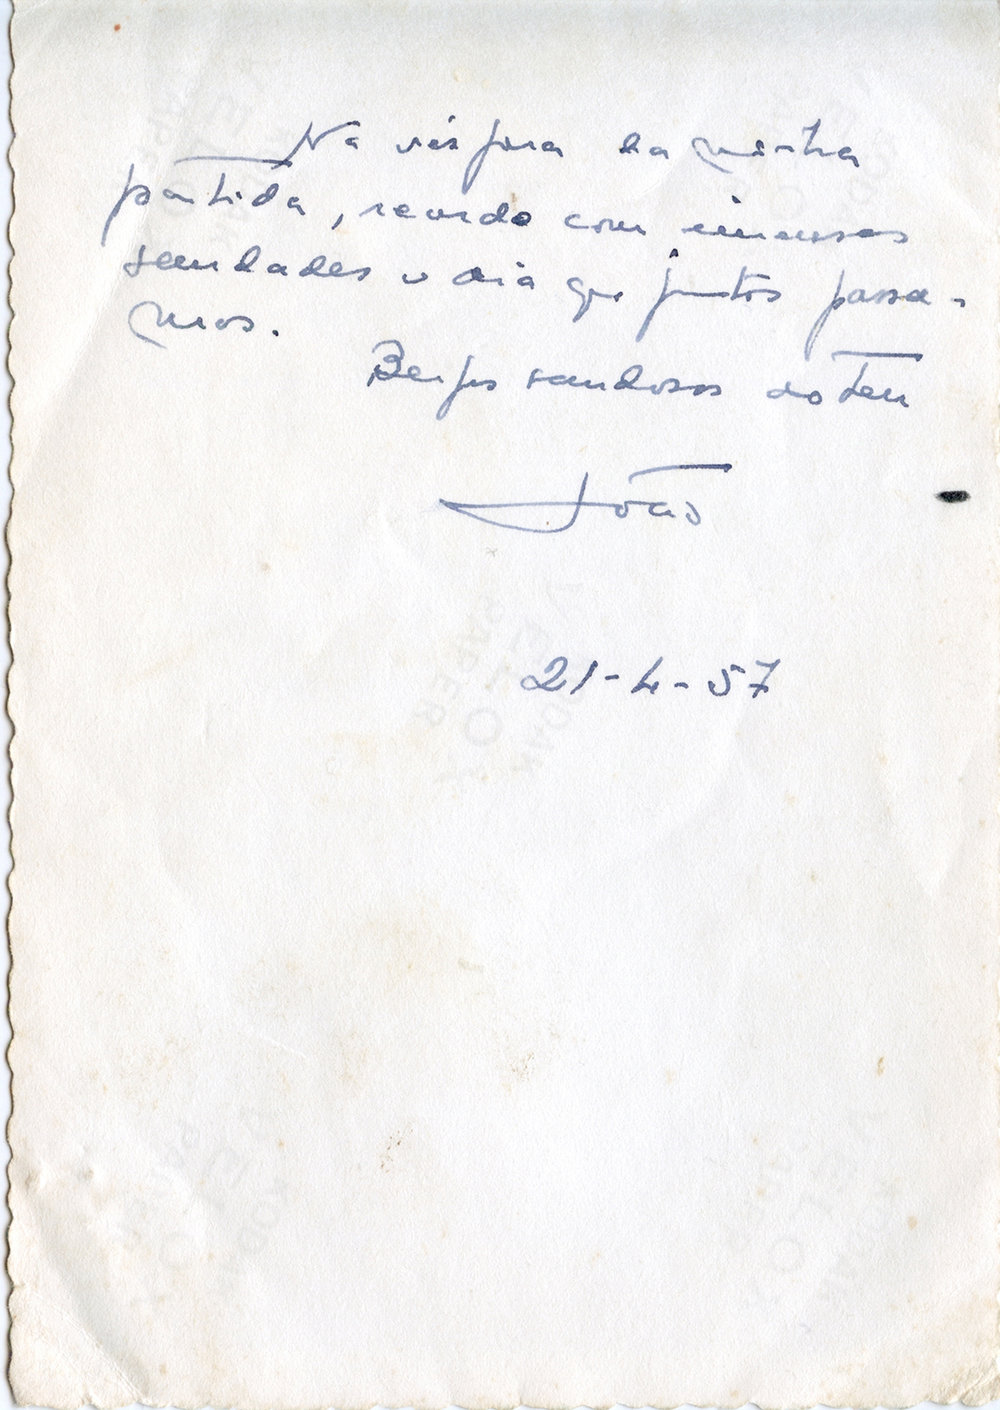 "Letter (written on the back of a photo) from my grandfather to my grandmother on the day before departing to the sea. The letter reads: ""On the day before departing, I remember and miss the day we spent together. Longing kisses from yours, João 21-4-57"